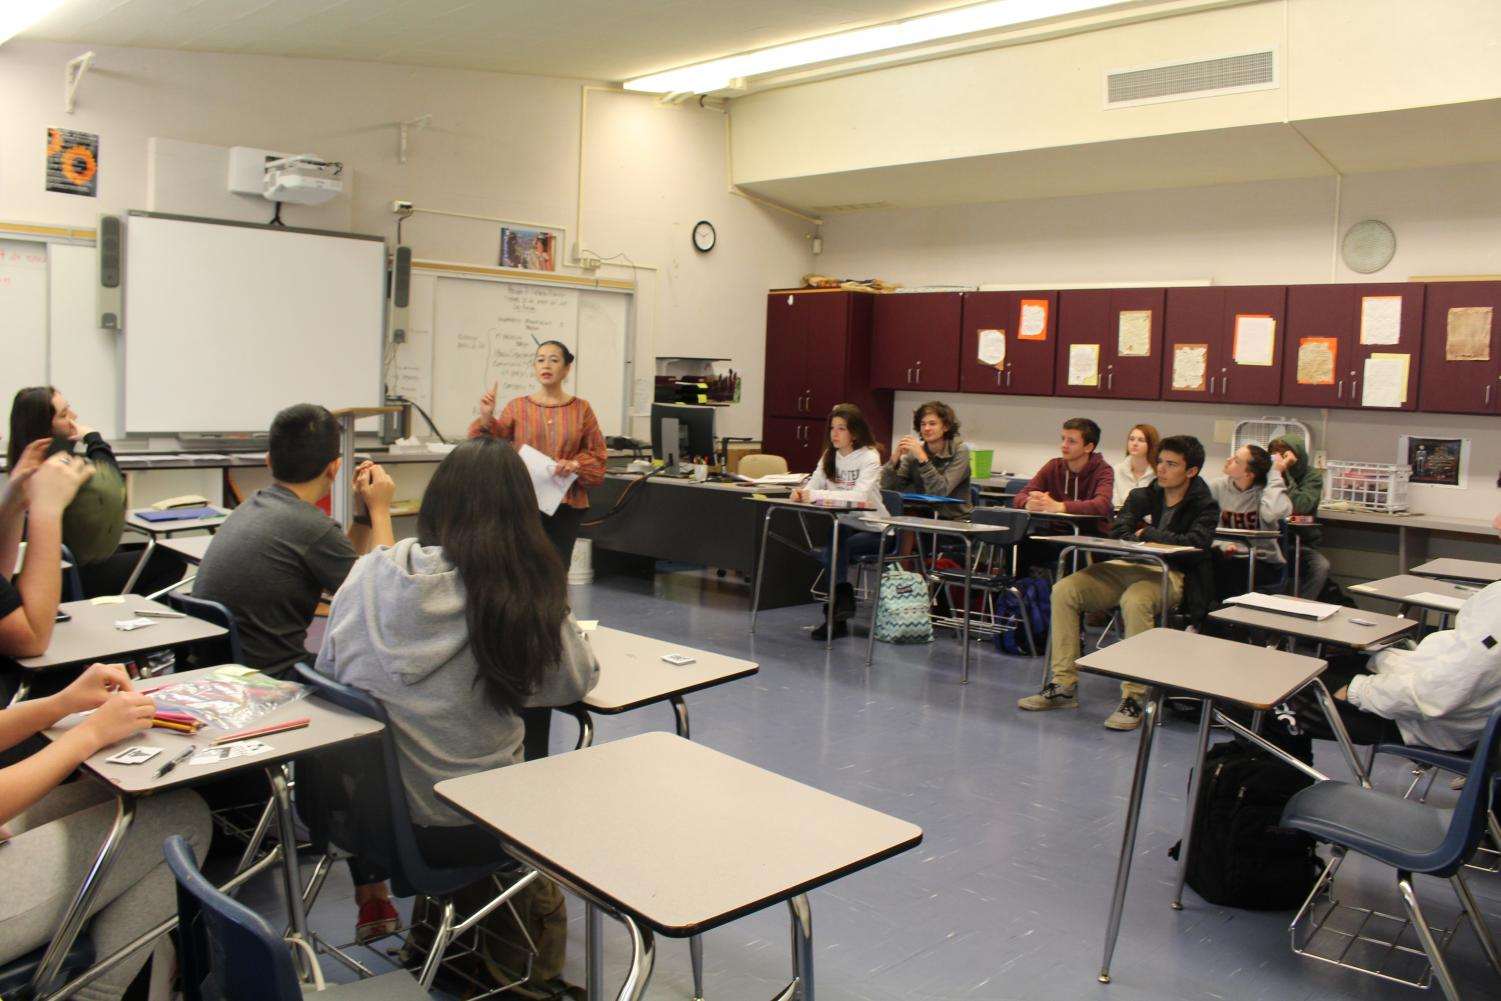 Thelma Mooney, a fill-in teacher for one of Bowles' classes, teaches a lesson.